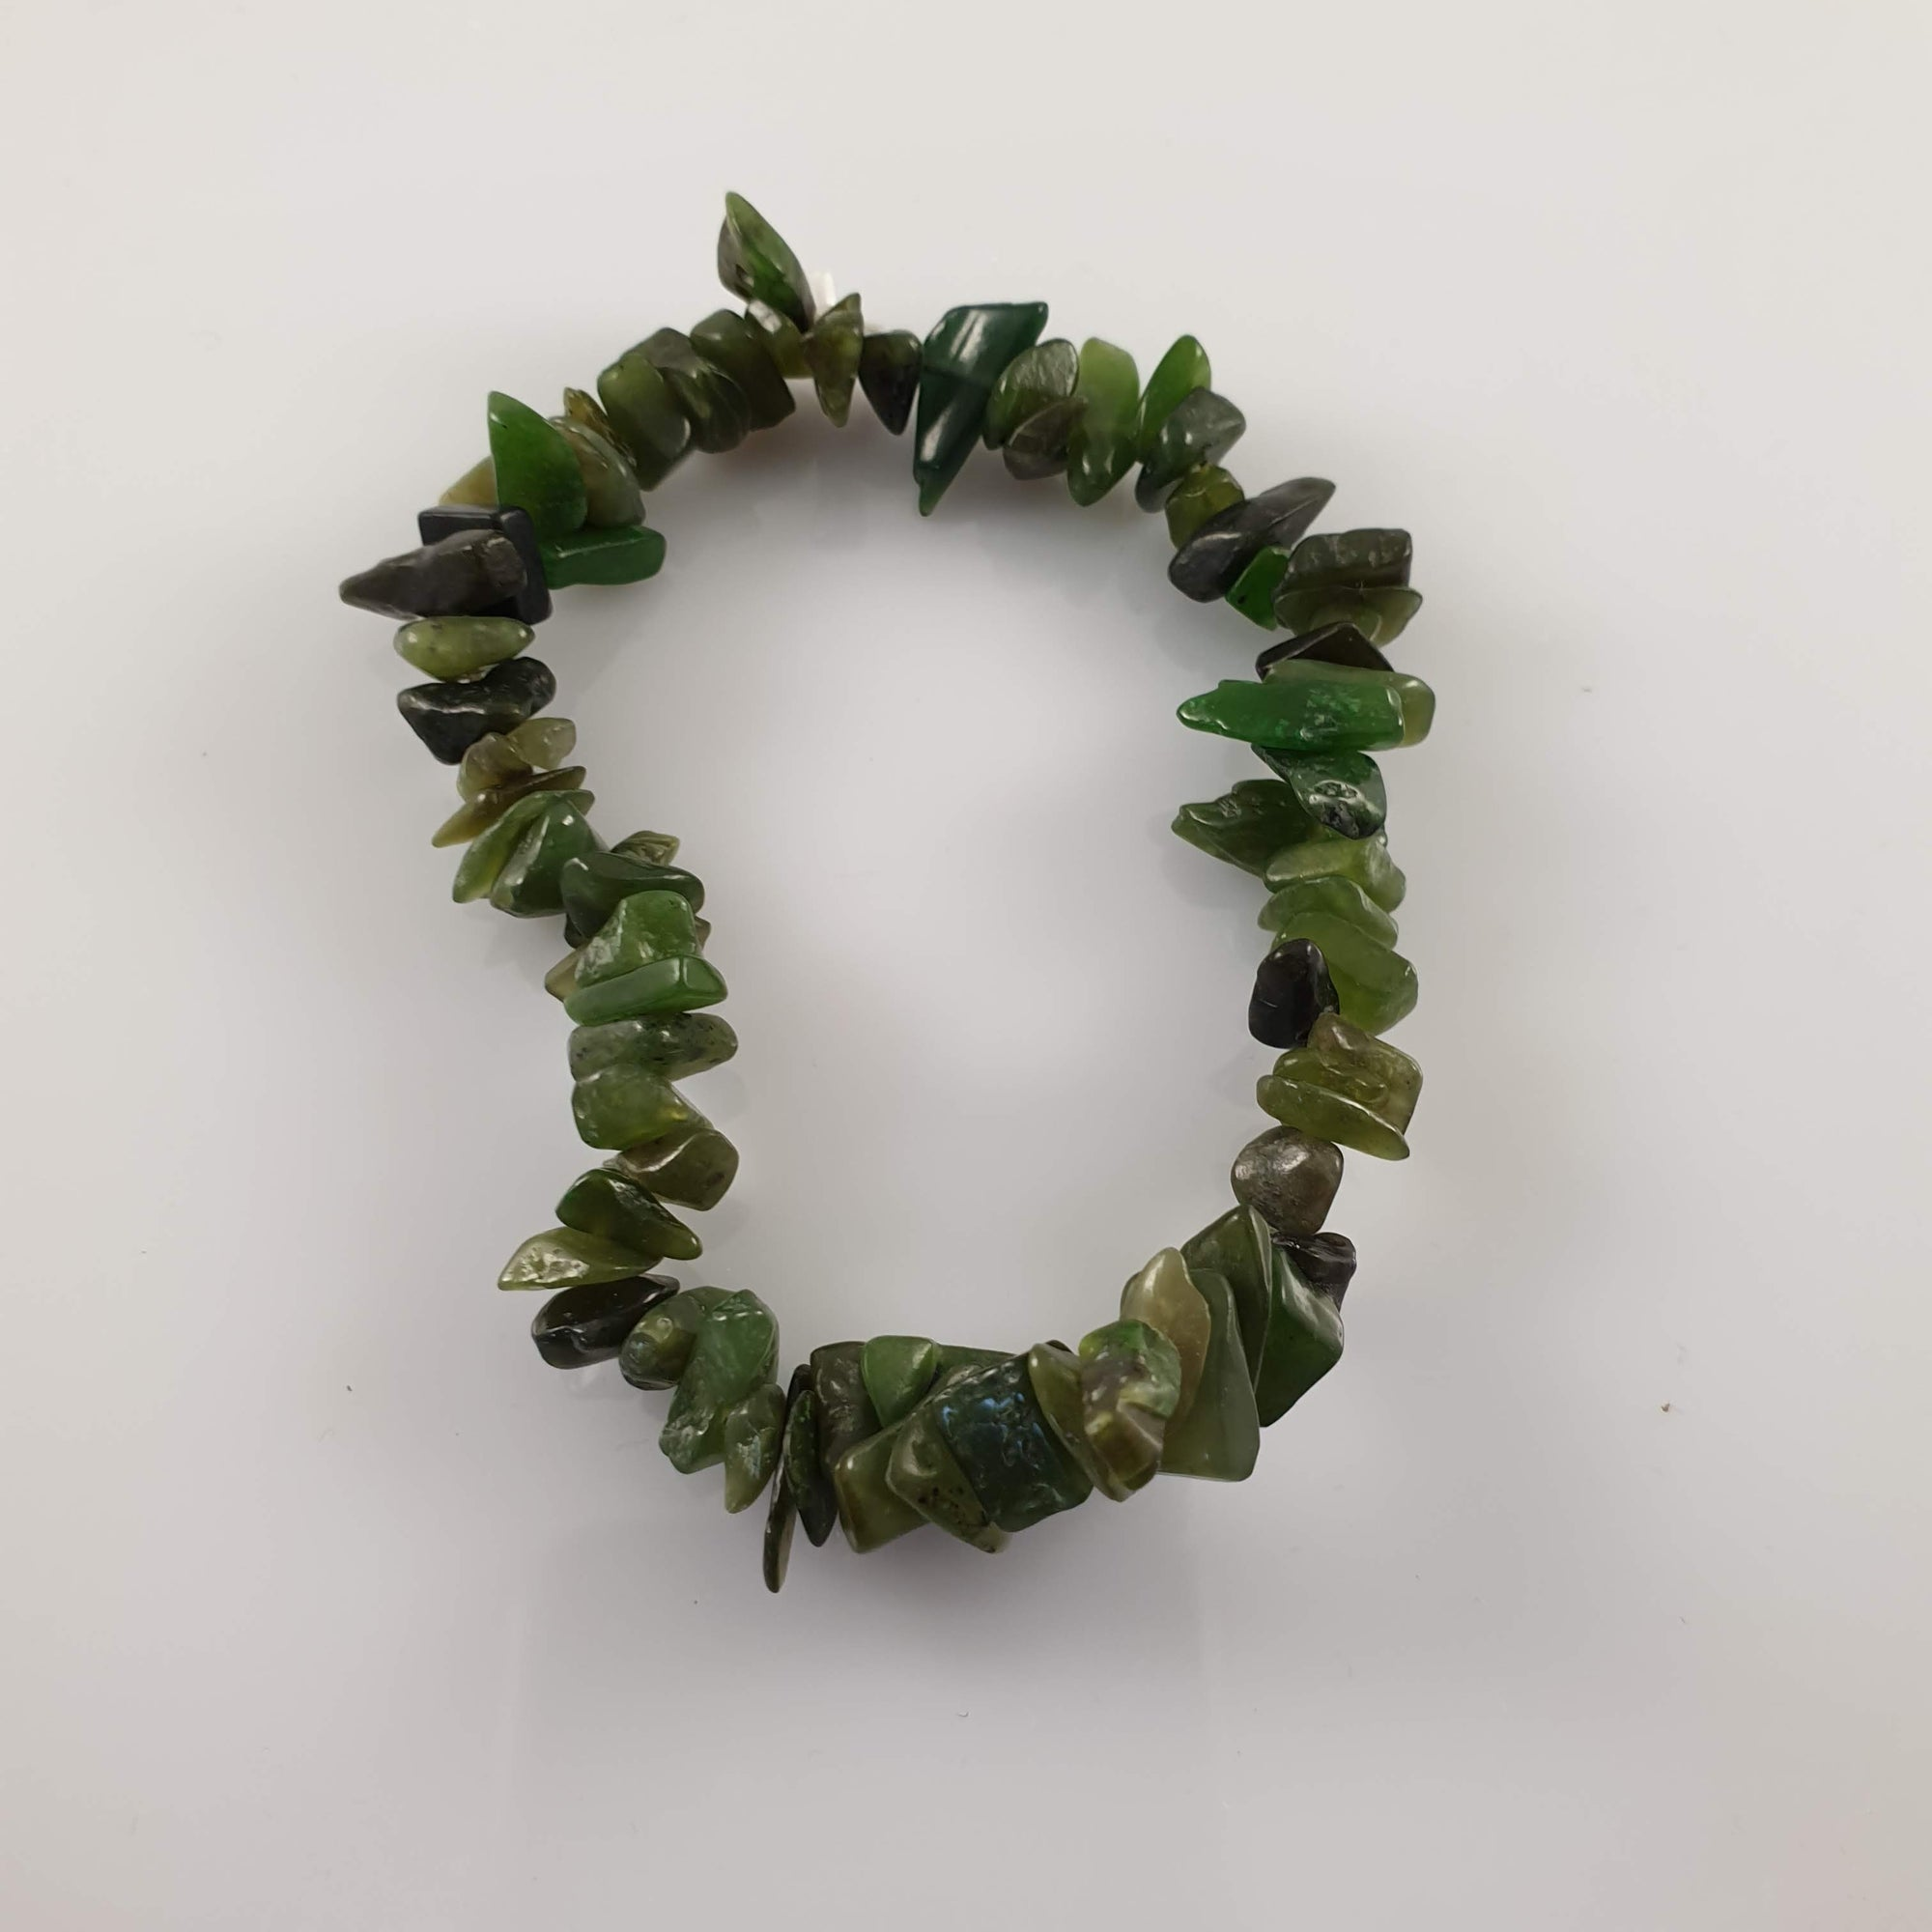 Jade Chip Crystal Bracelet - Rivendell Shop NZ